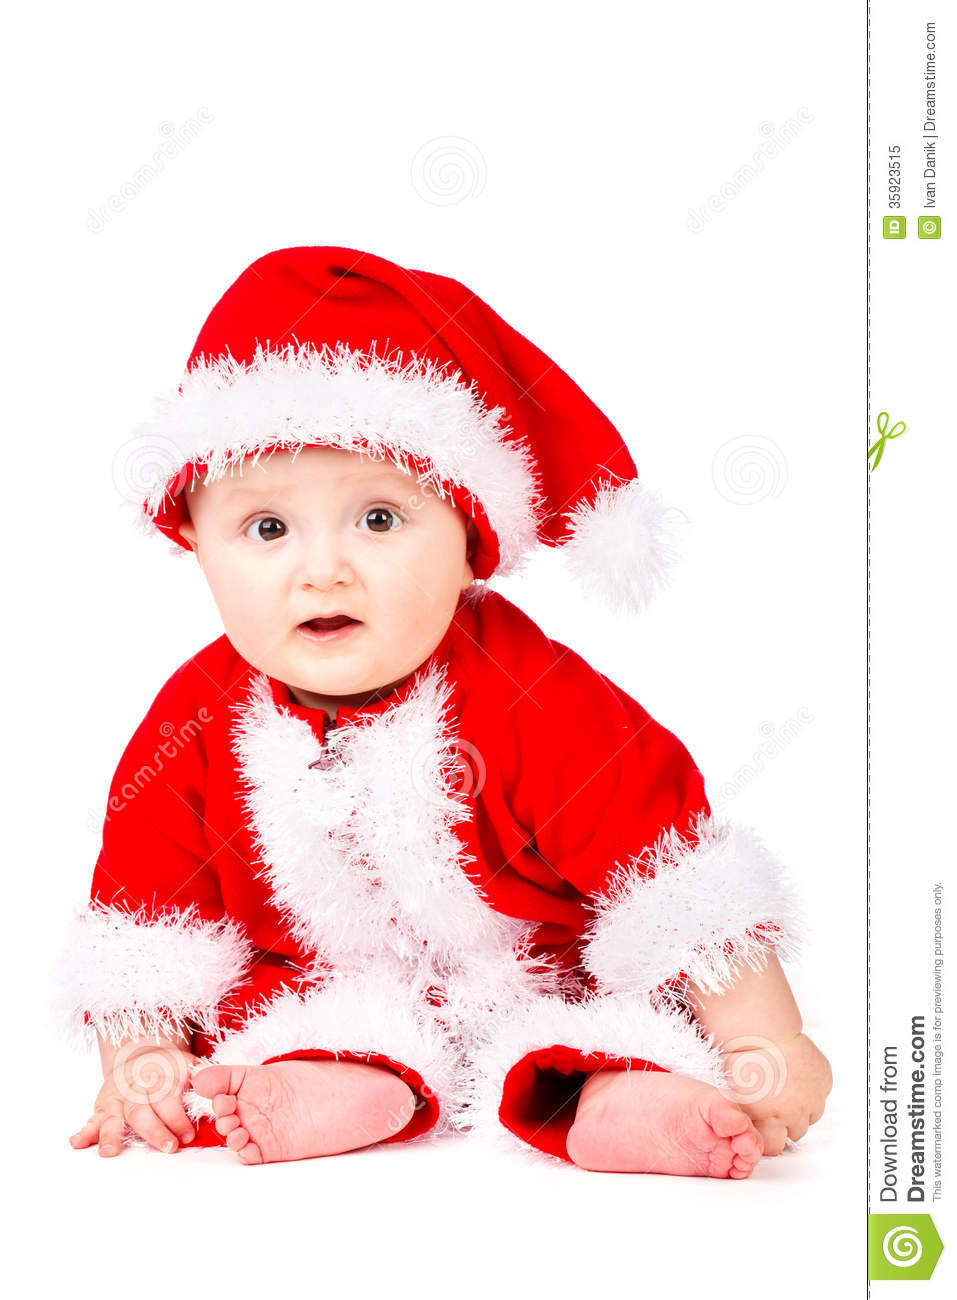 Christmas Baby In Santa Claus Clothes Royalty Free Stock